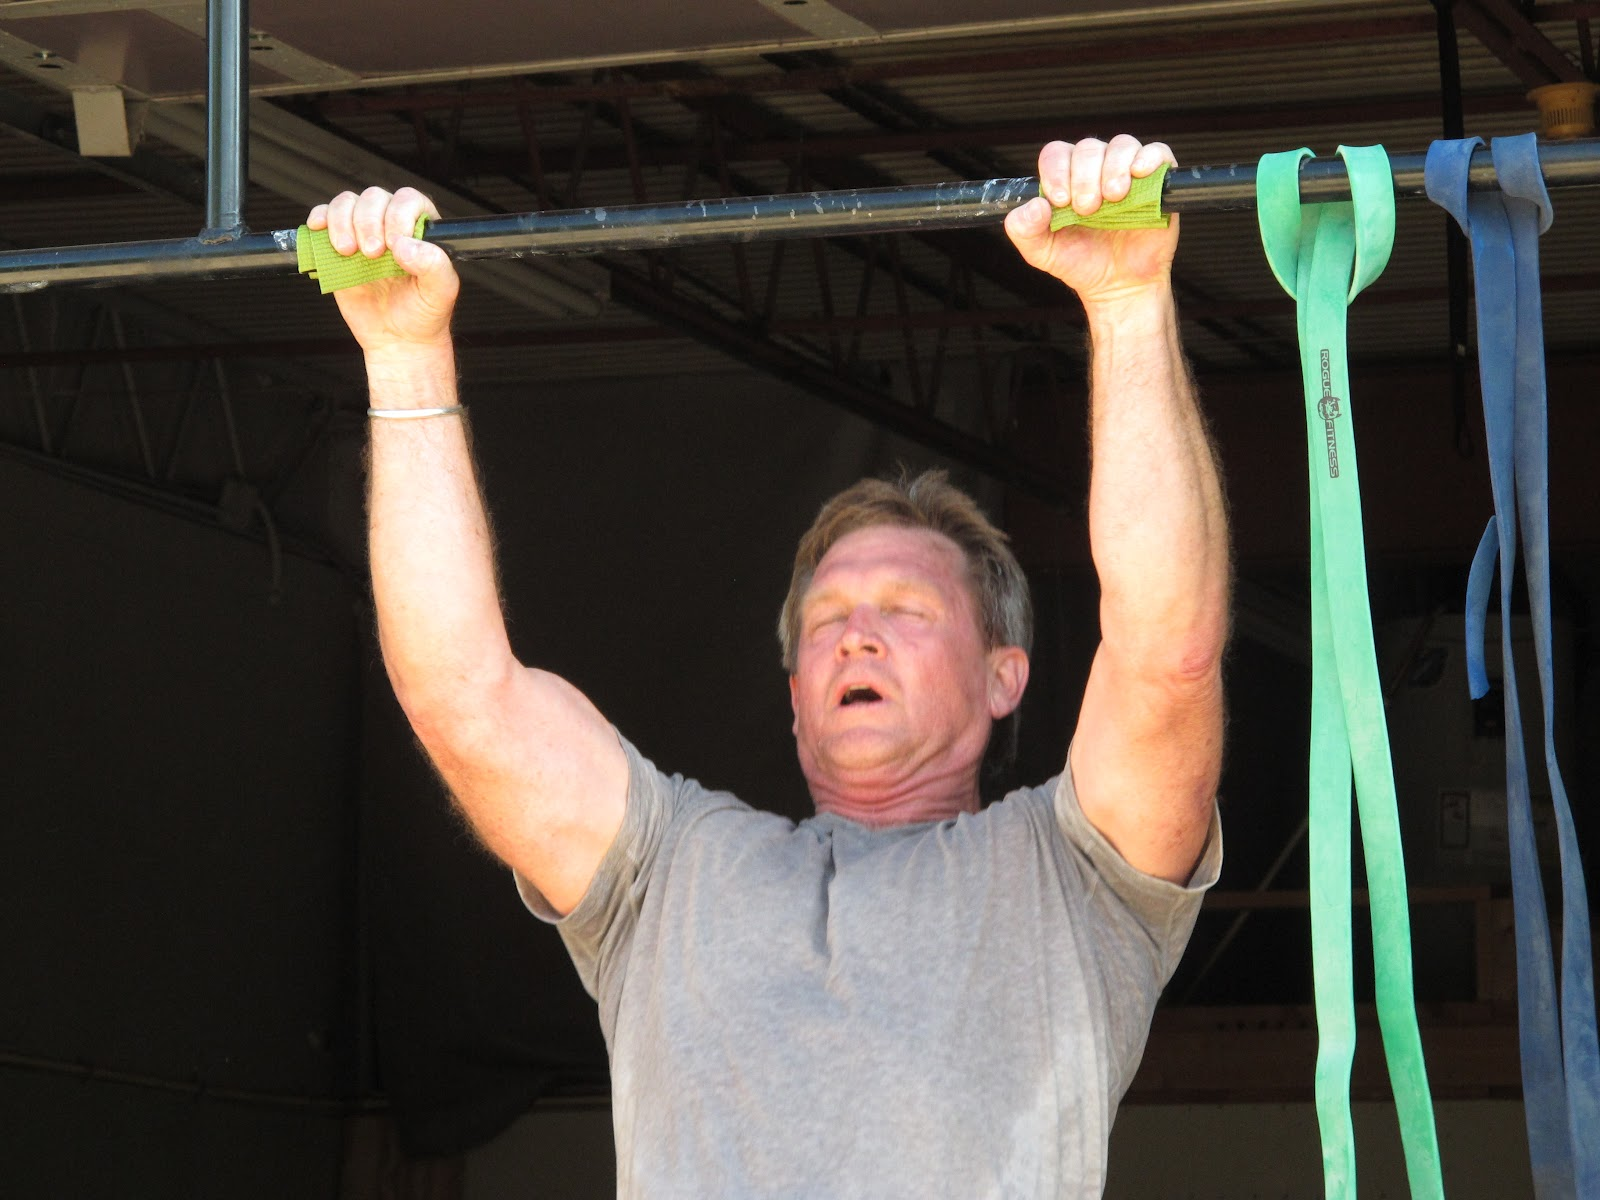 Brandt crossfit downtown fort worth - Pull Up Master At Crossfit Seven Fort Worth Tx